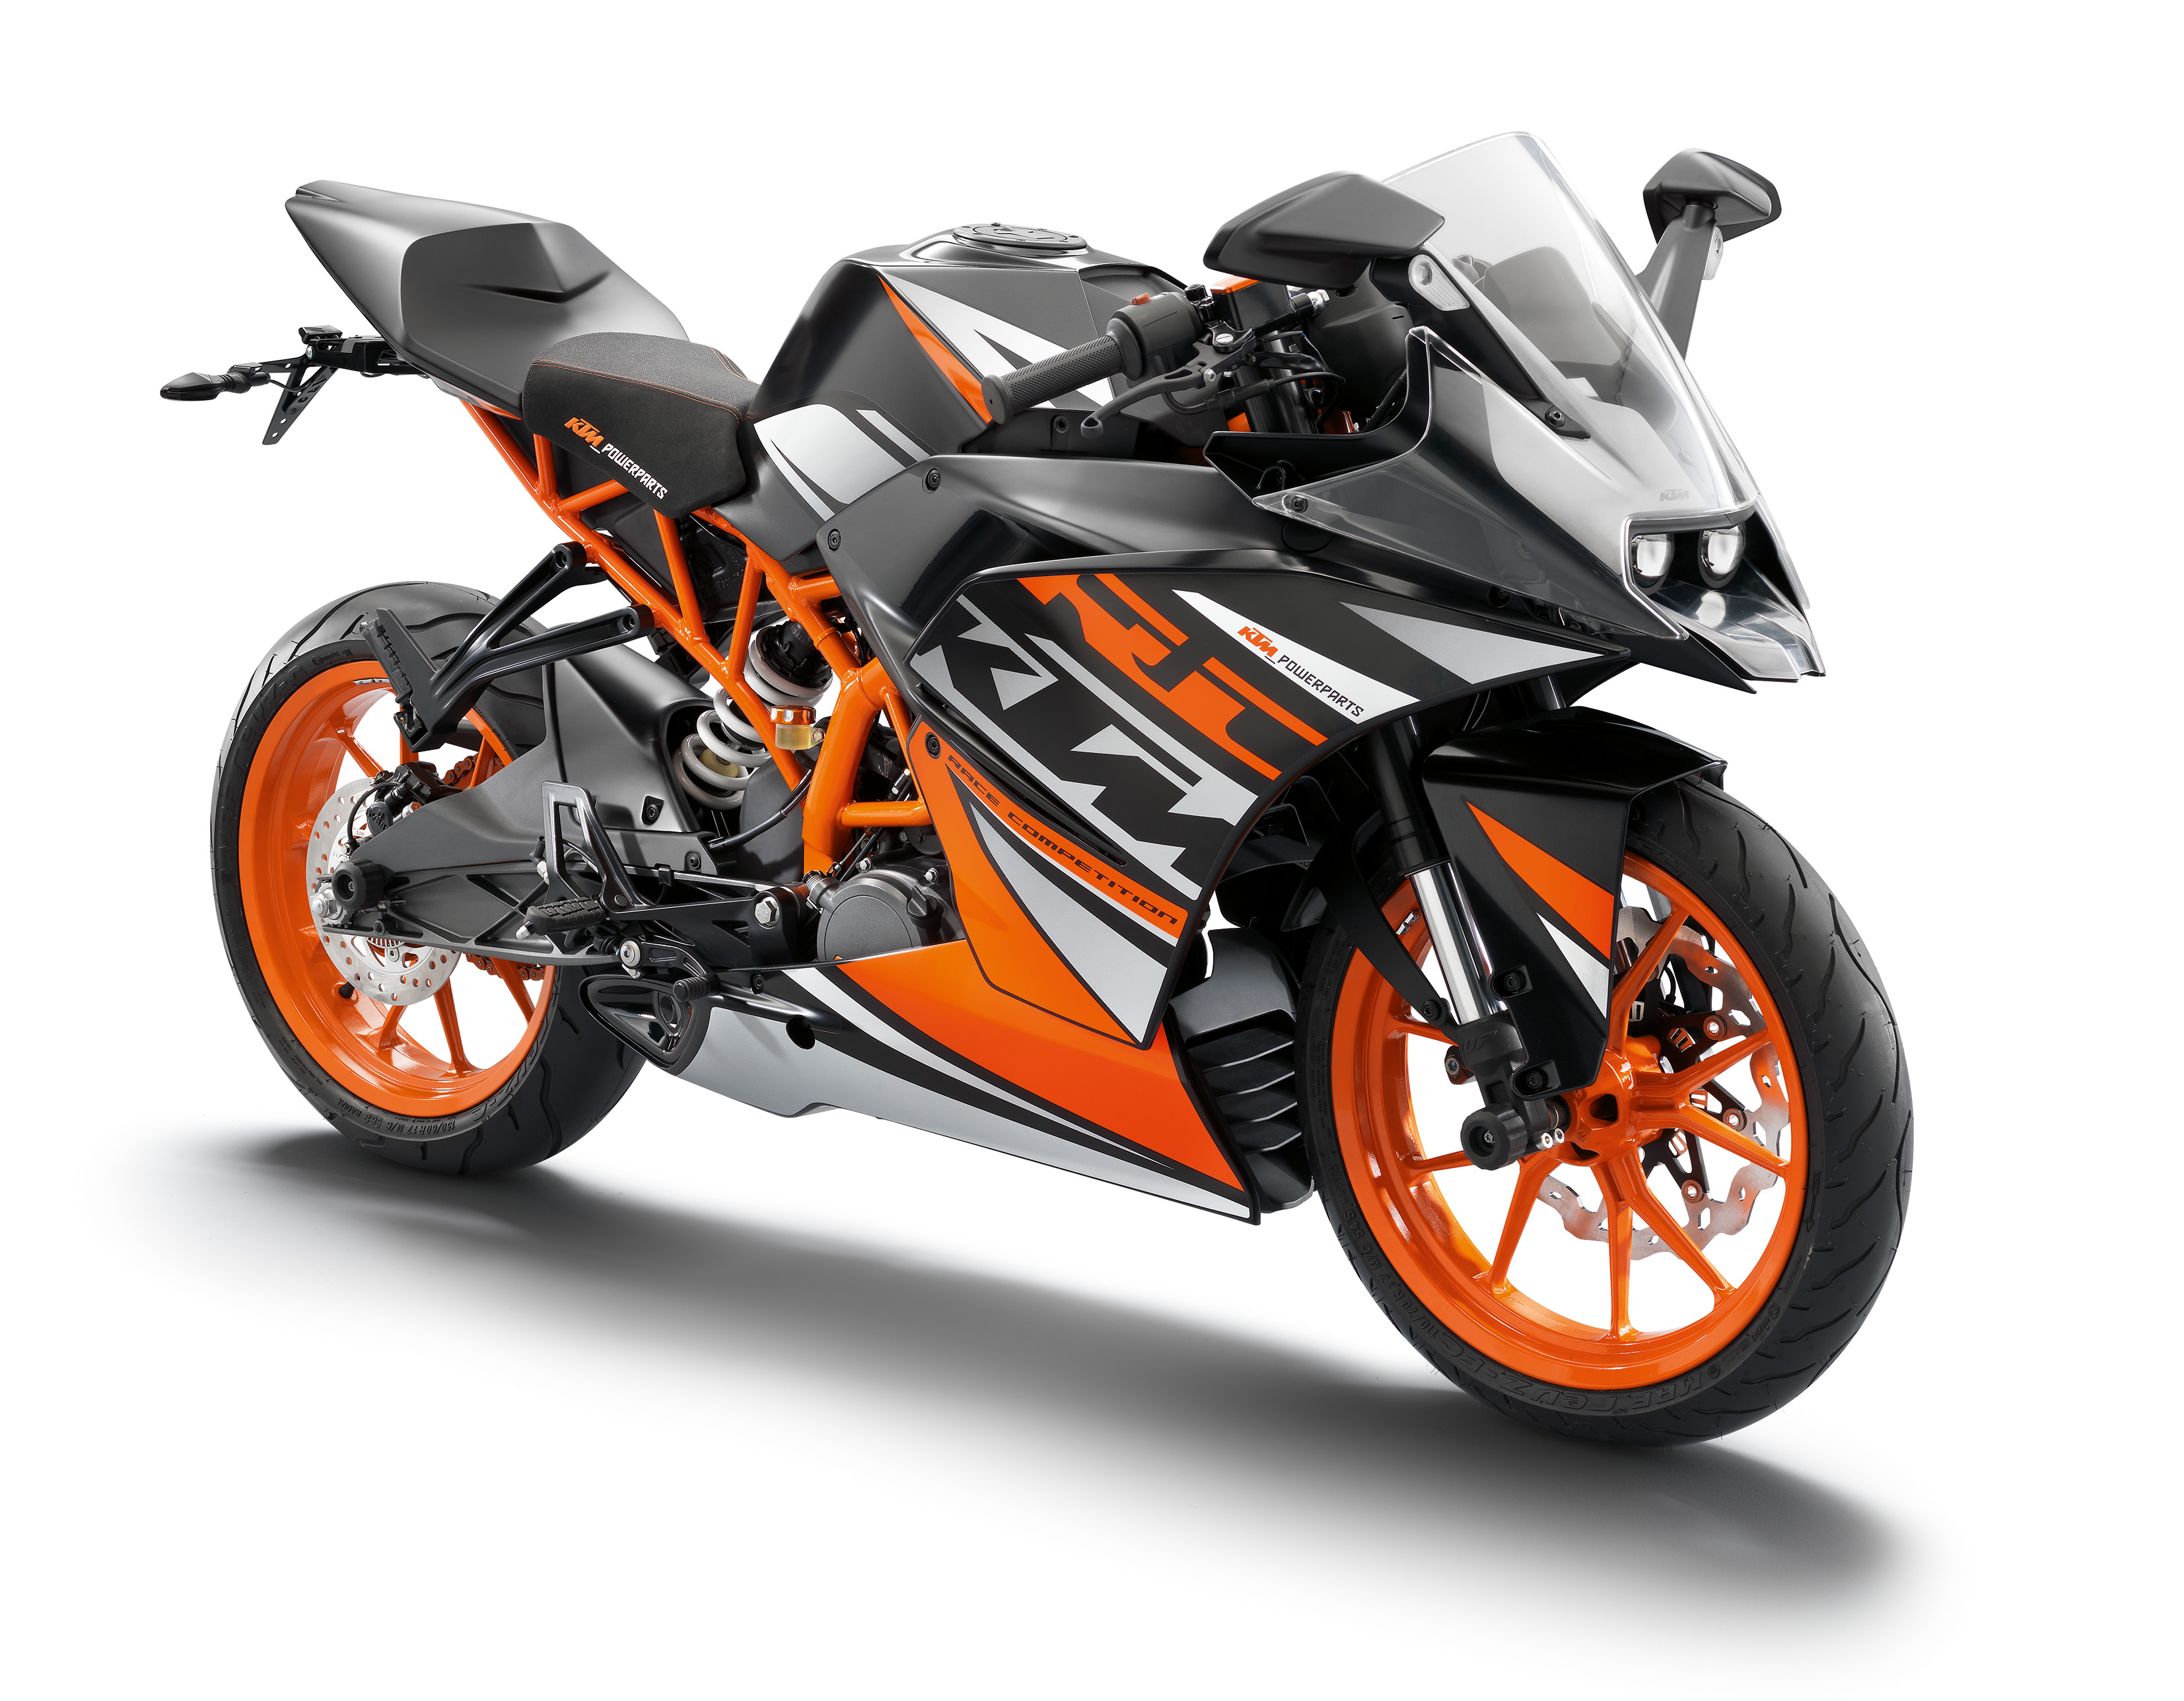 Ktm New 2016 Bike Wallpapers: KTM RC390, RC200 And RC125 Unveiled